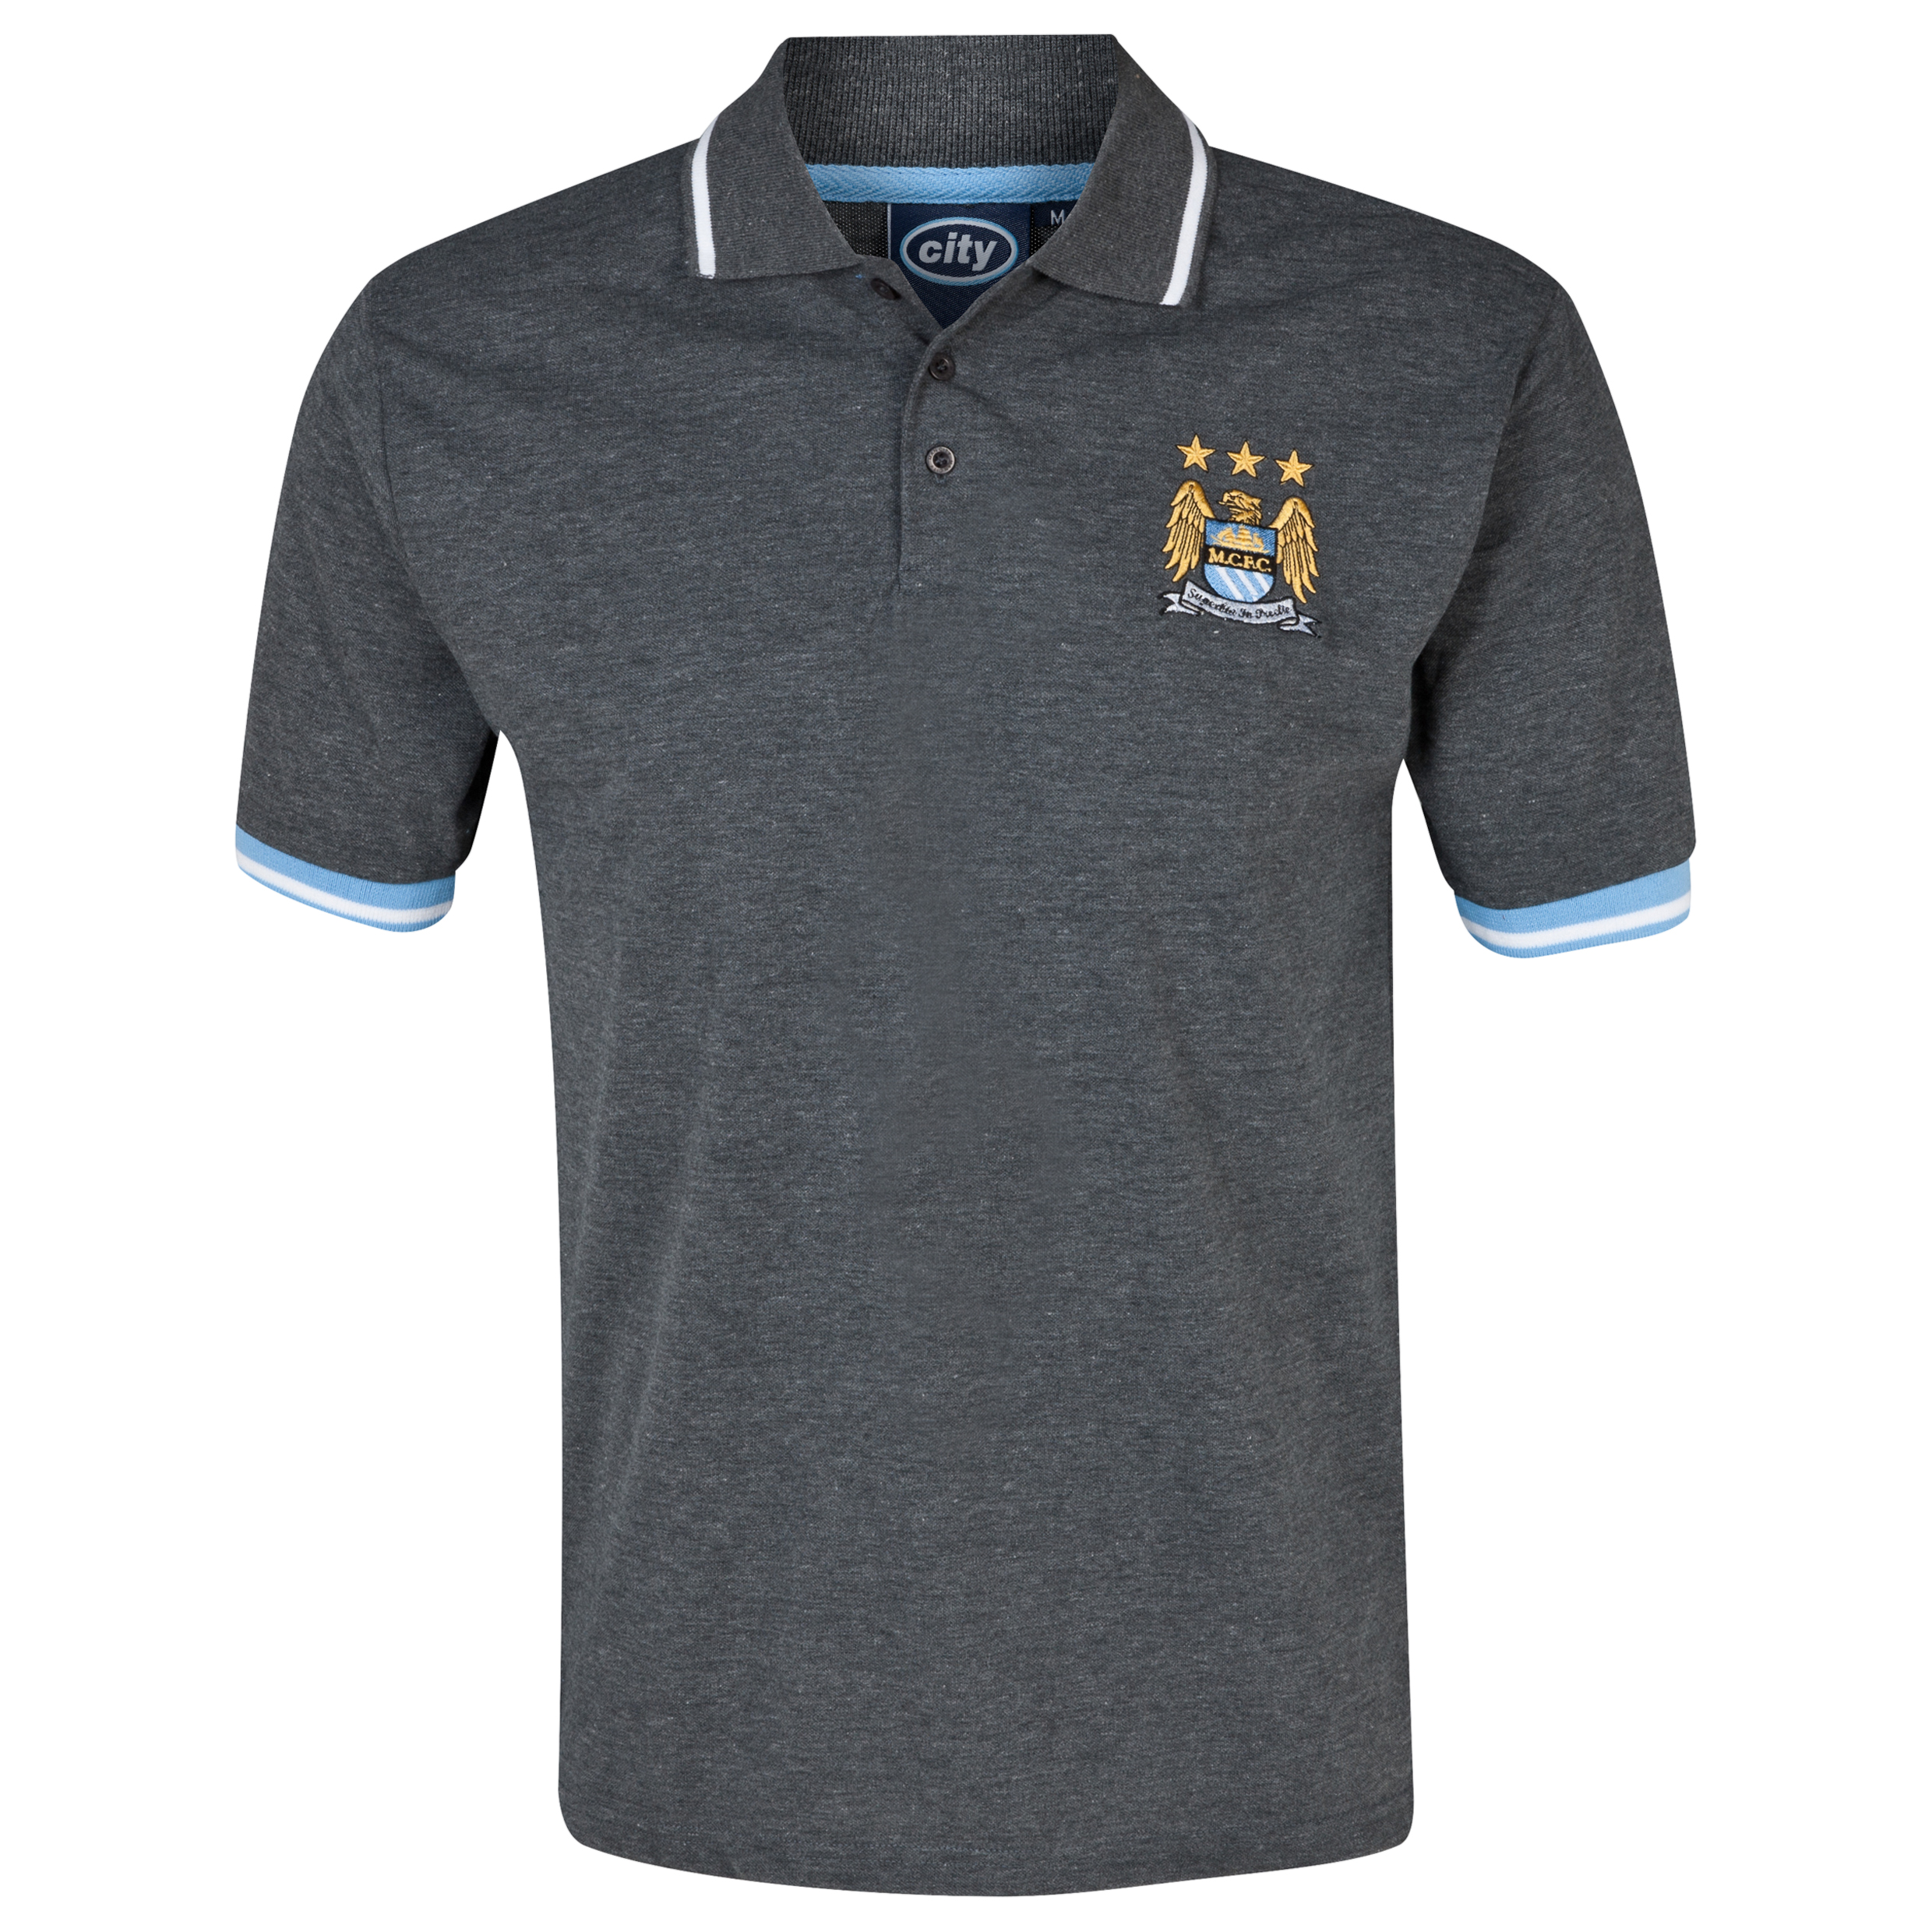 Manchester City Essentials Tour Polo Shirt - Mens Charcoal